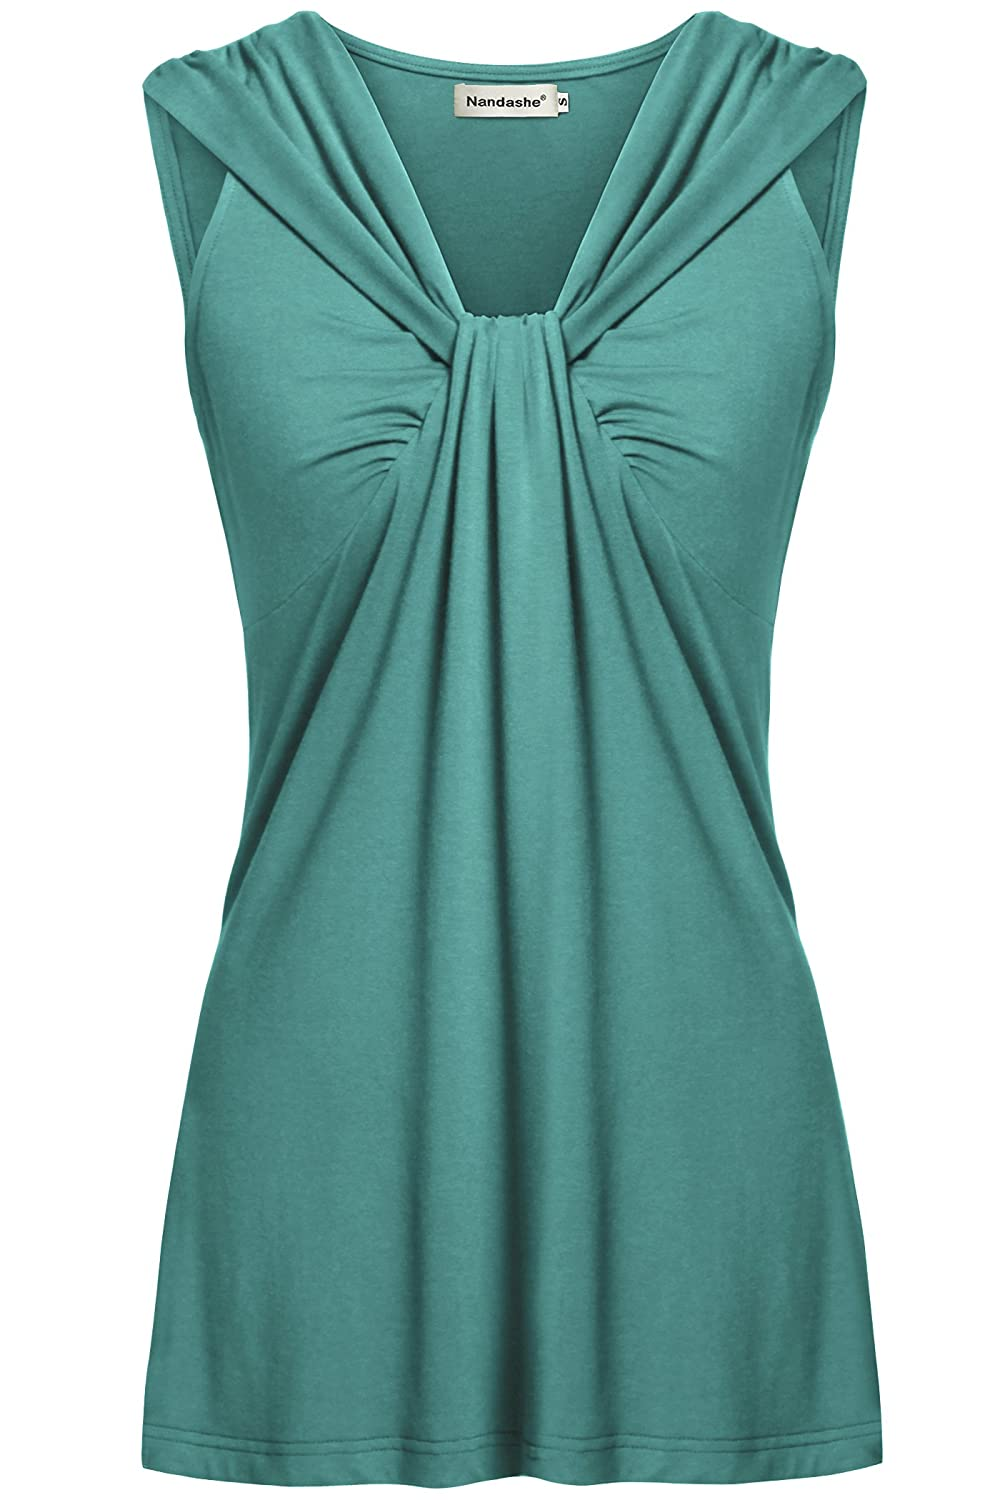 b19072fd6f5 Features:Vneck Cami/Notch Neck/Sleeveless Tunics/Boho Tanks/Solid  Color/Flowy Tops for Women/Maternity Pregnant Nursing Tops/Casual Loose  Camis/Chic ...